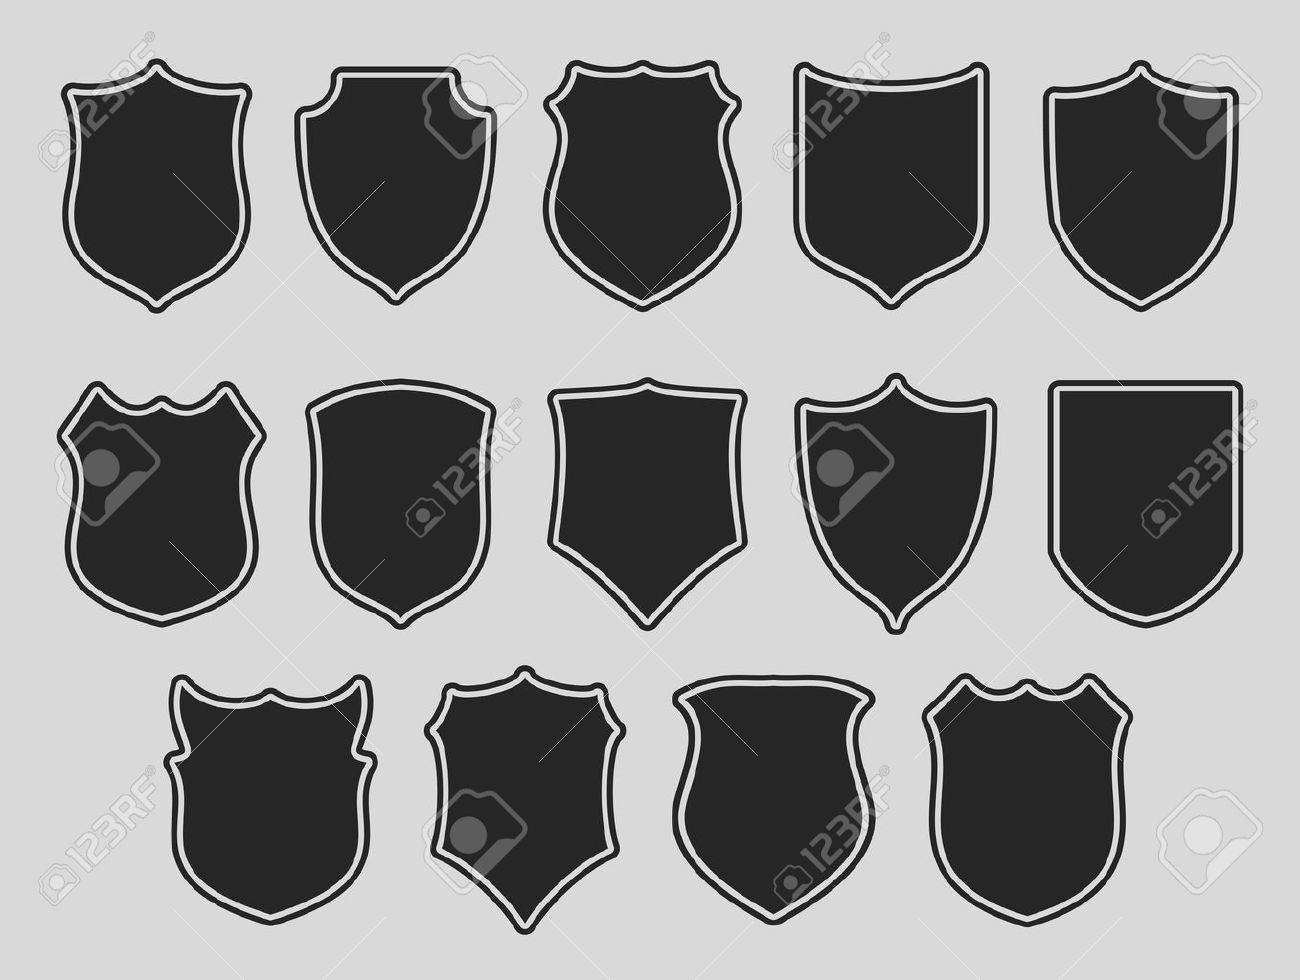 Set of shields with contours over grey background. Vector illustration. - 41364173